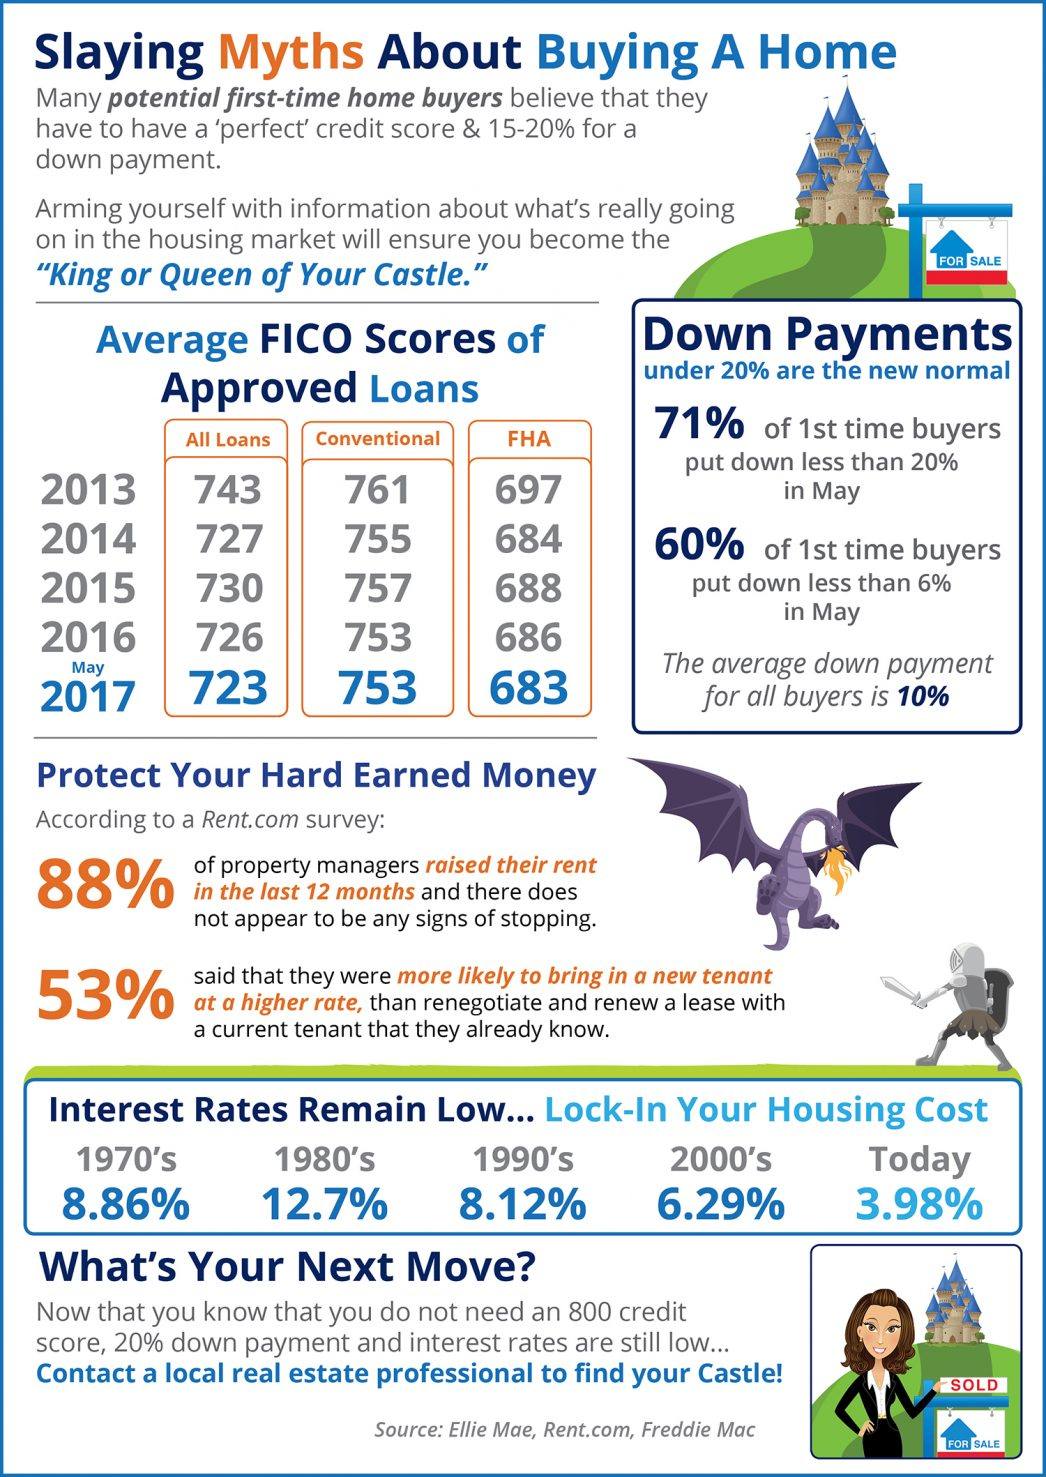 Home Buying Myths Slayed